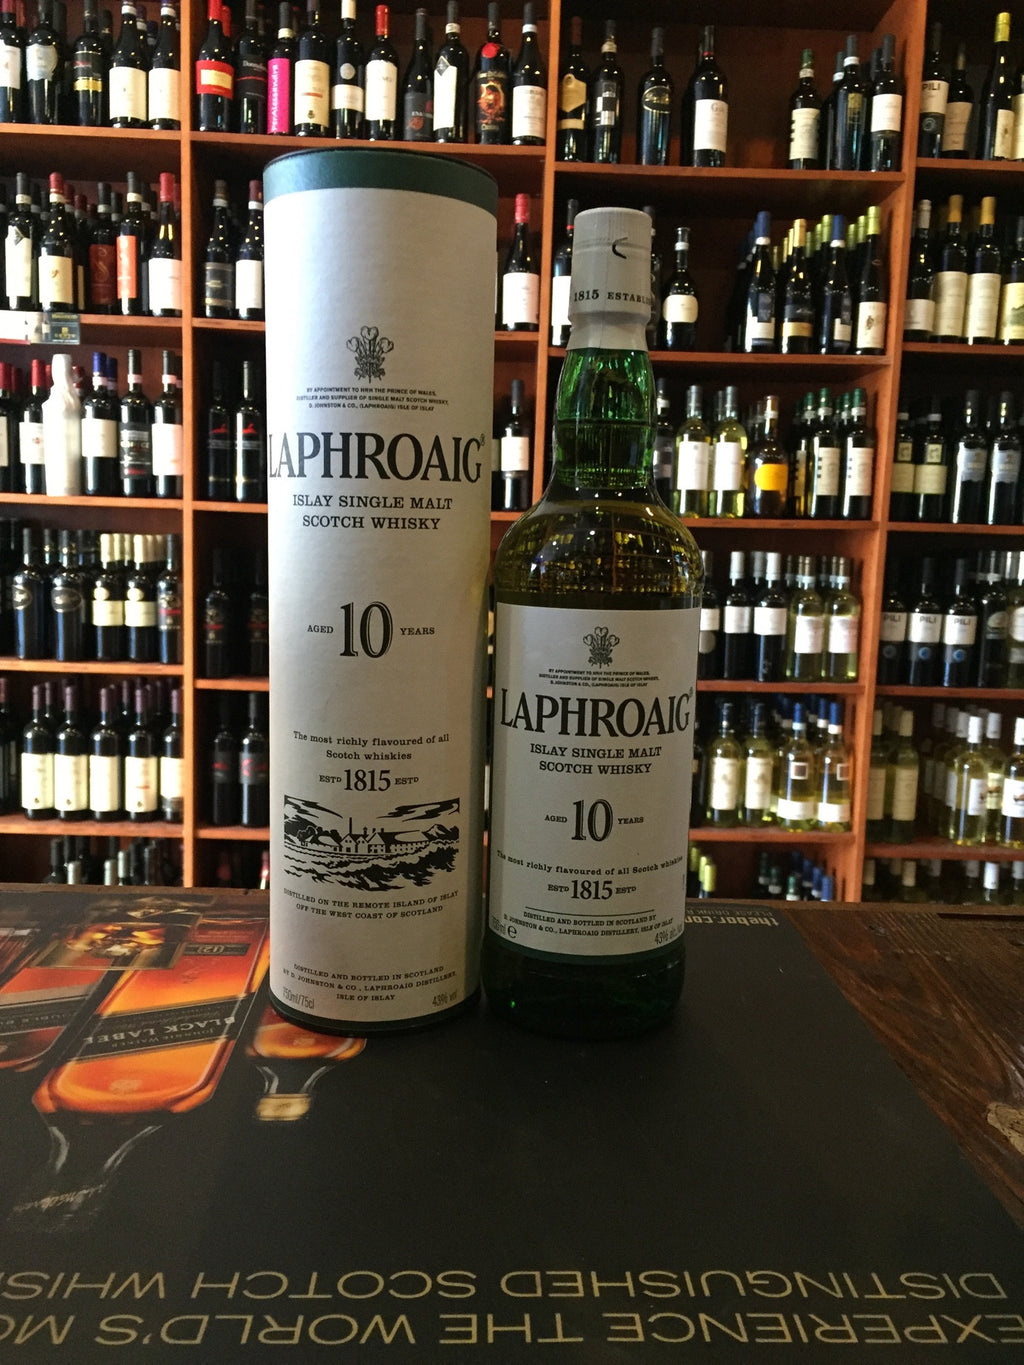 Laphroaig Scotch Single Malt 10yr Old 86º 750ml